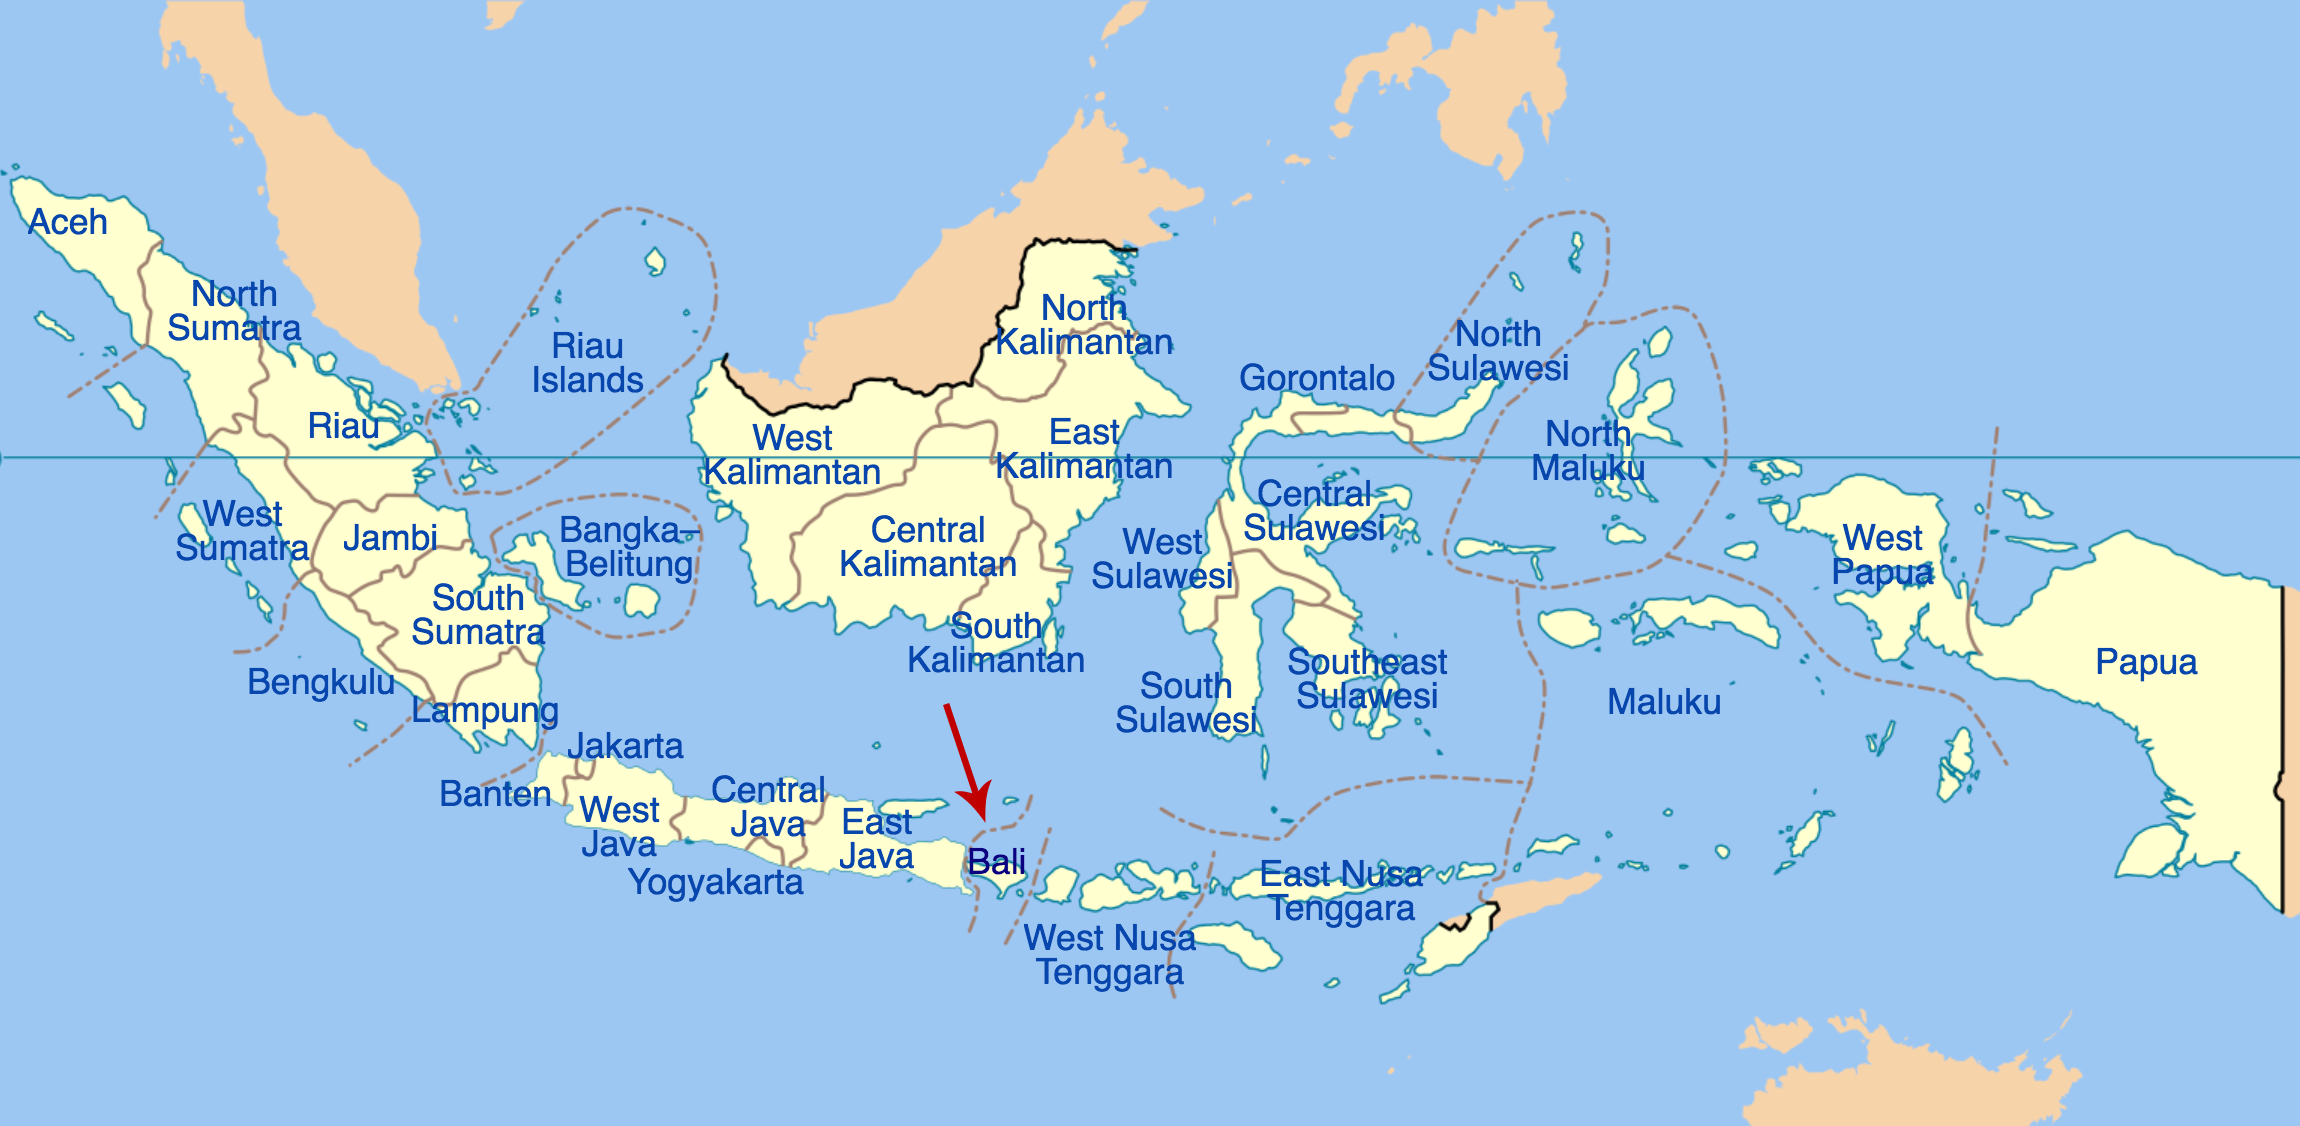 Map showing Indonesia's provinces with an arrow pointing out Bali's location.